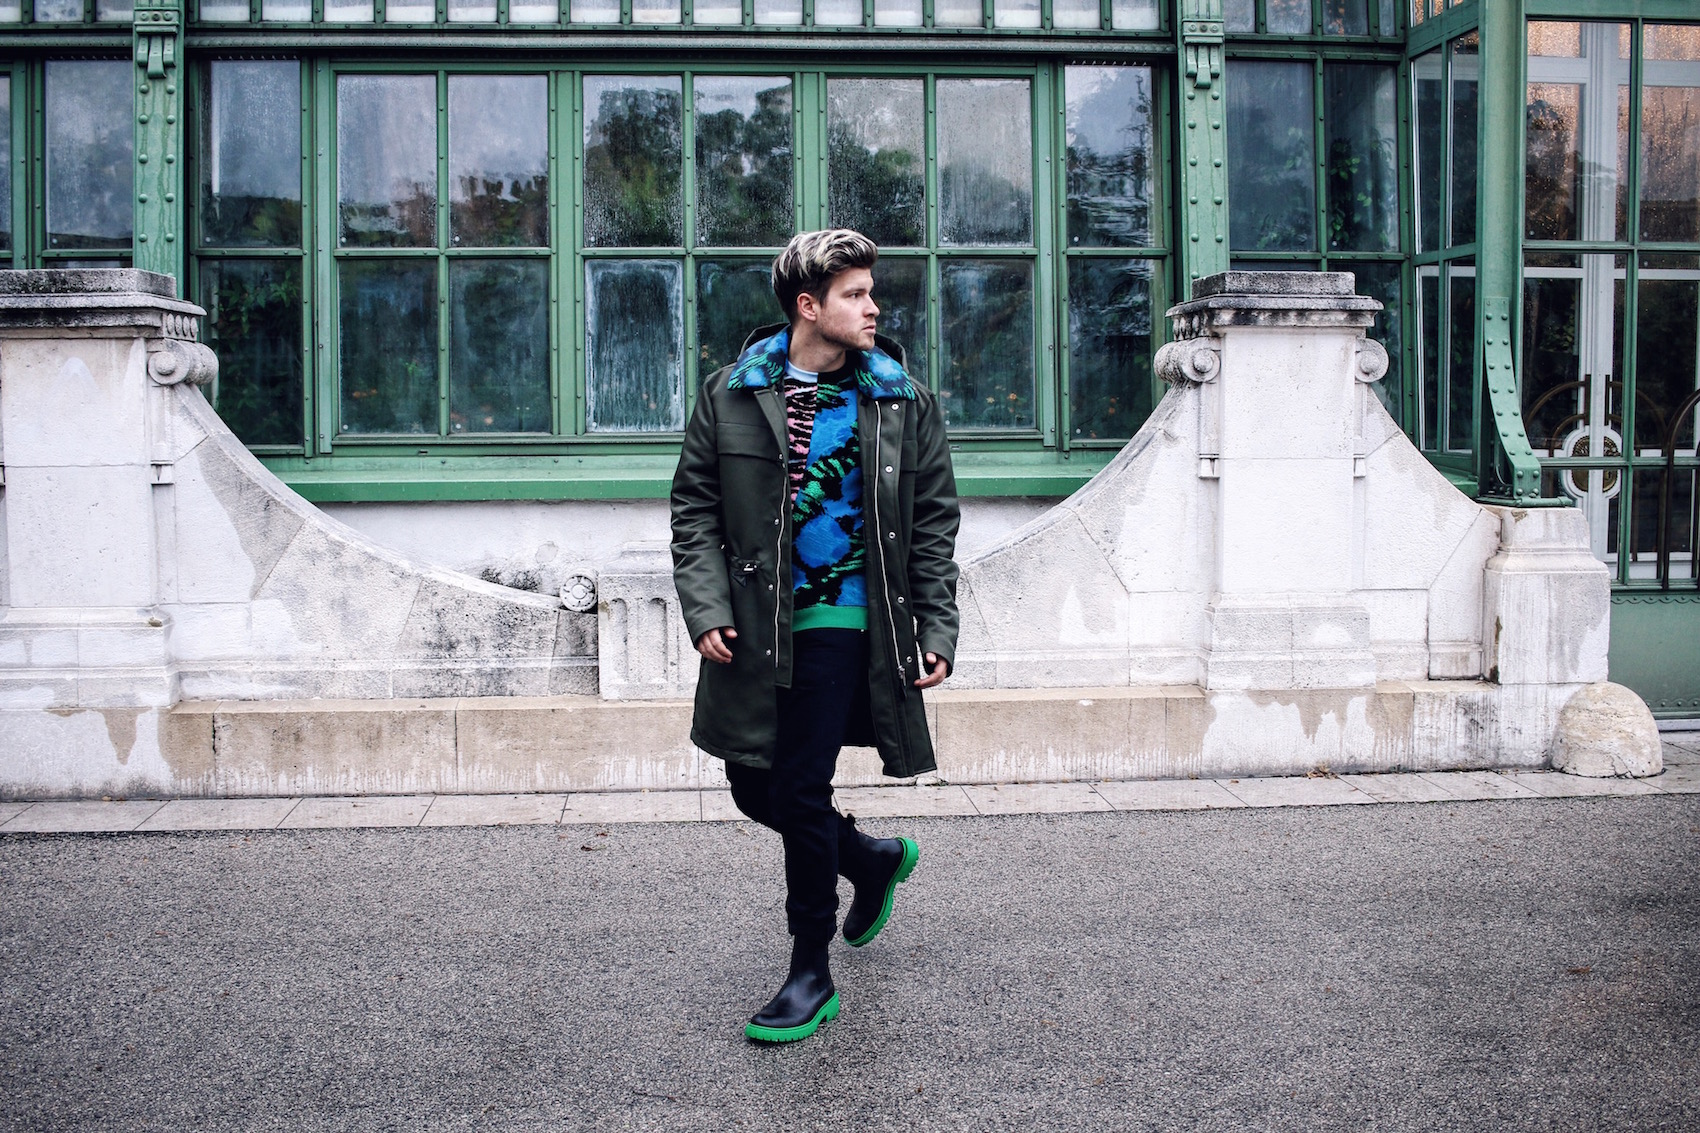 Kenzo x H&M_Favorite Pieces For Men_Meanwhile in Awesometown_Austrian Mens Fashion and LIfestyleblogger2